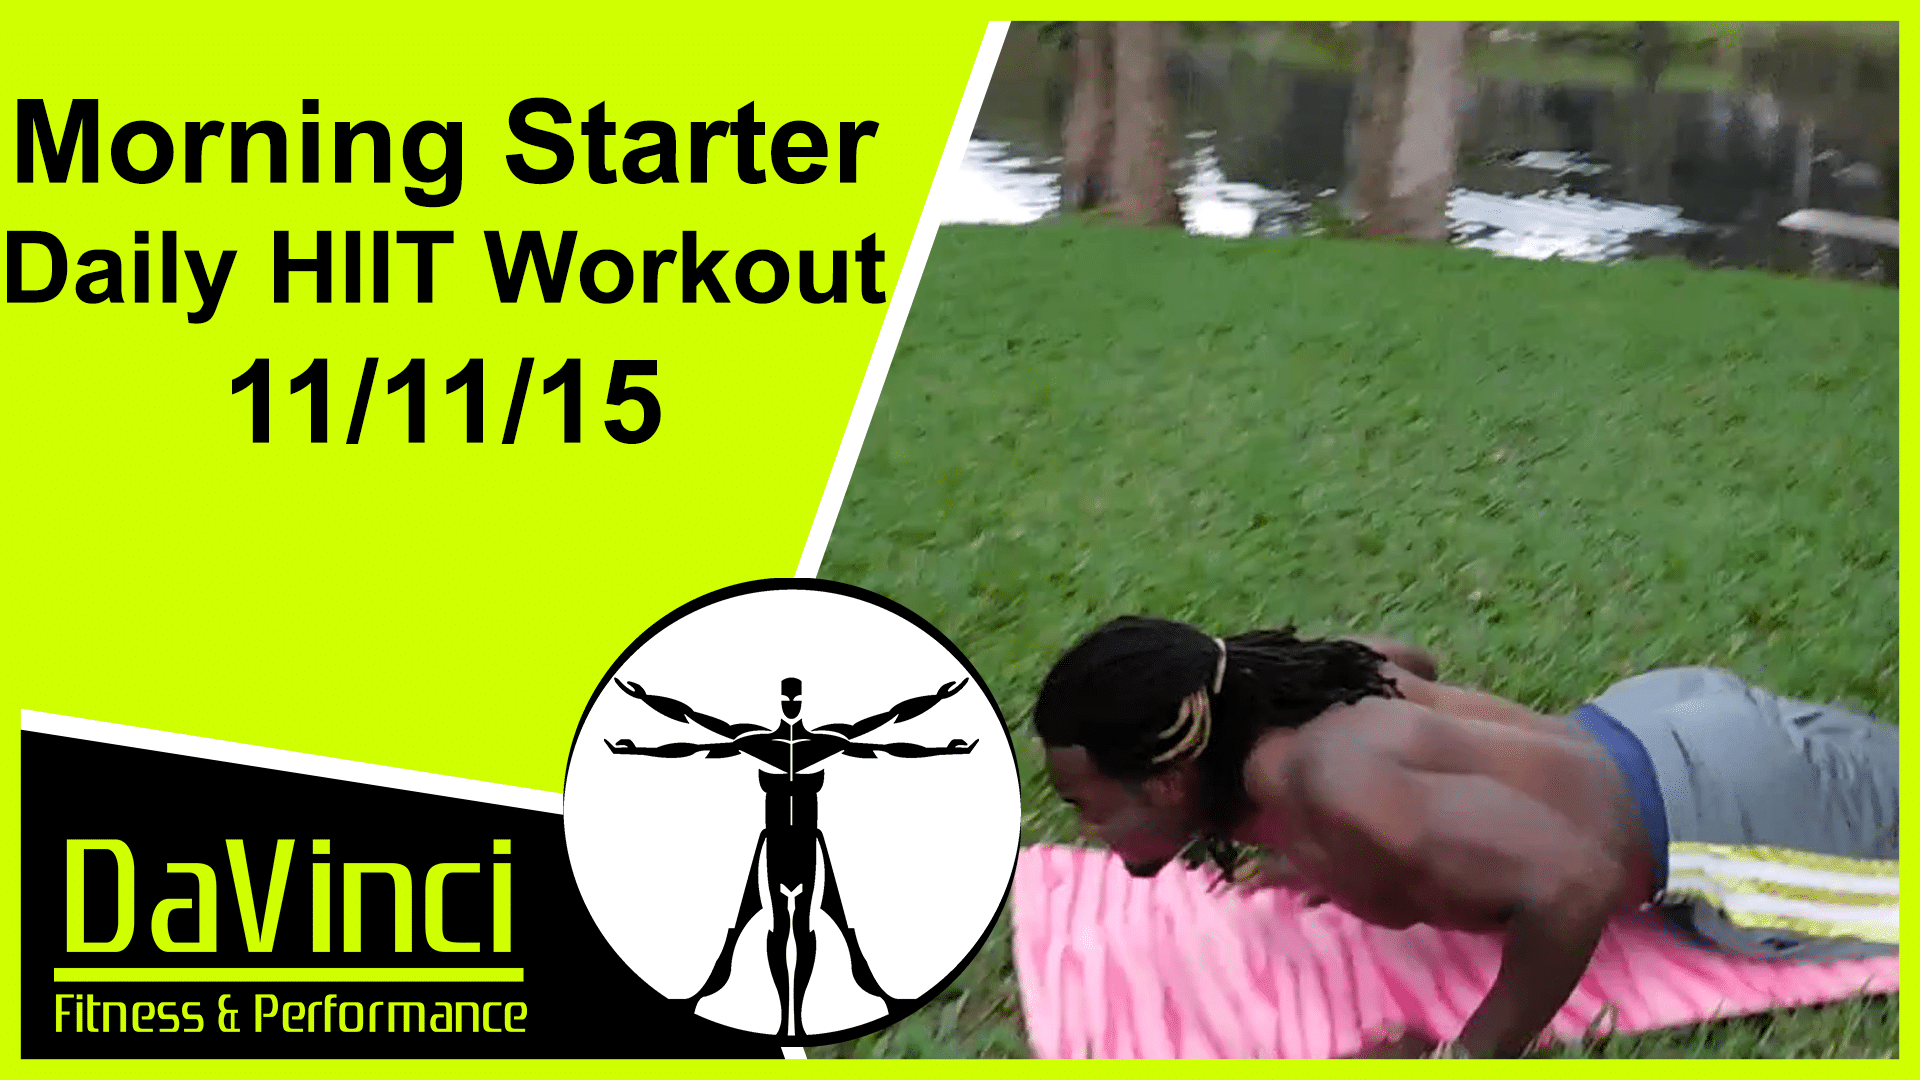 Morning Starter Daily HIIT workout